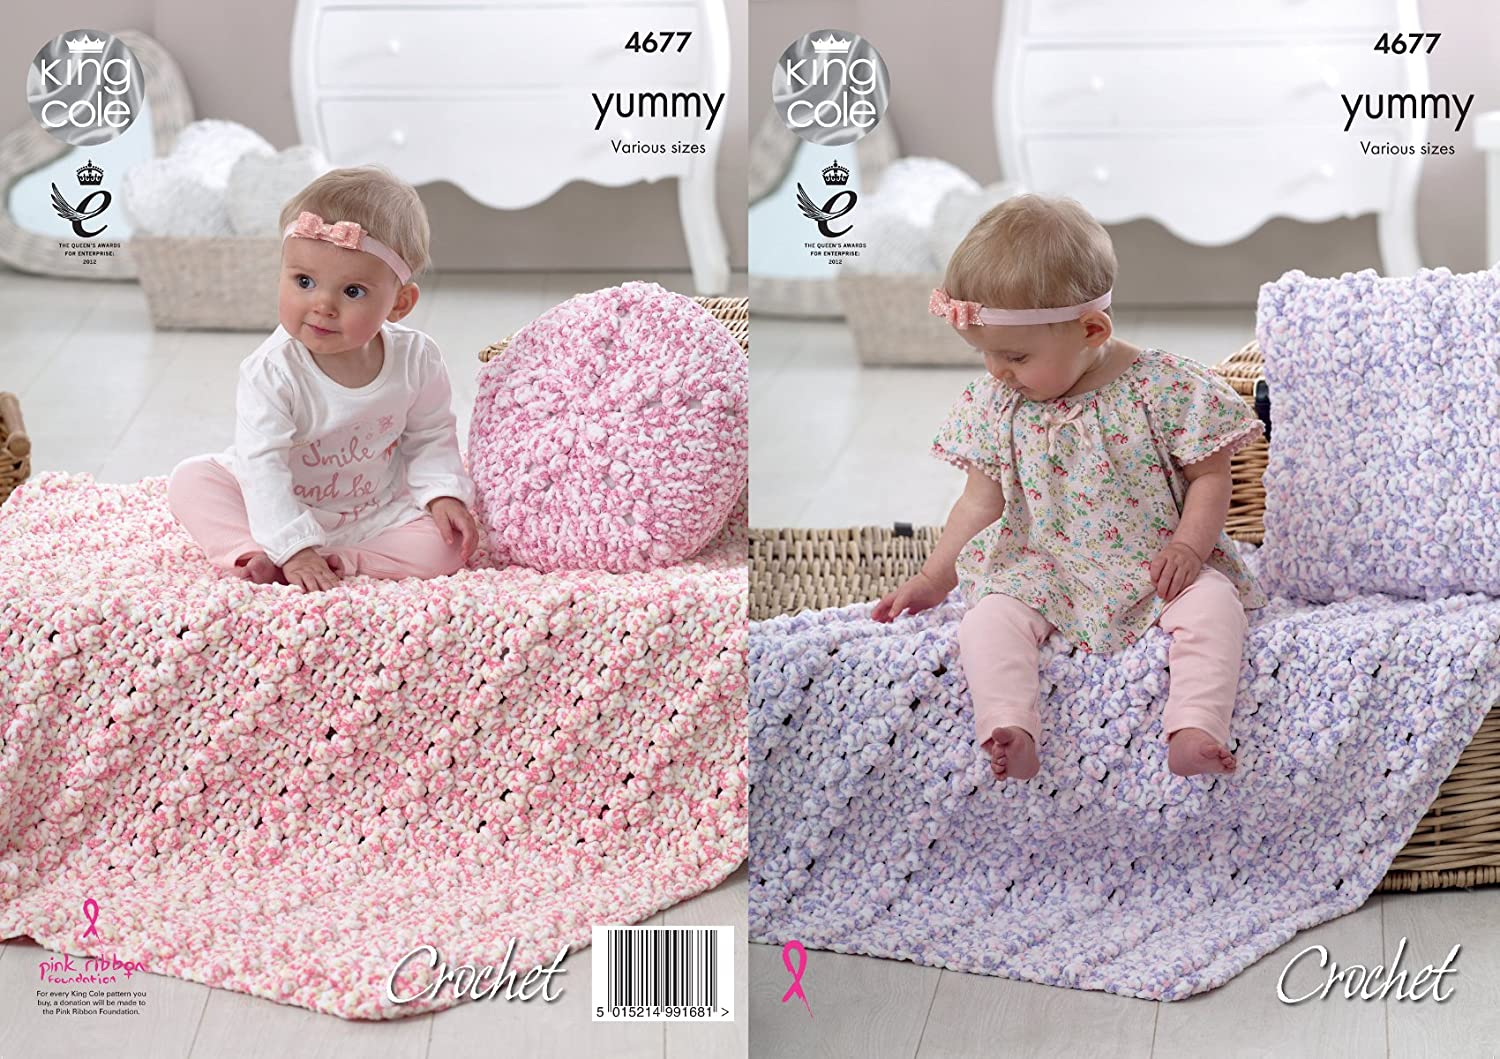 King Cole 4677 Crochet Pattern Baby Blankets and Cushions in ...